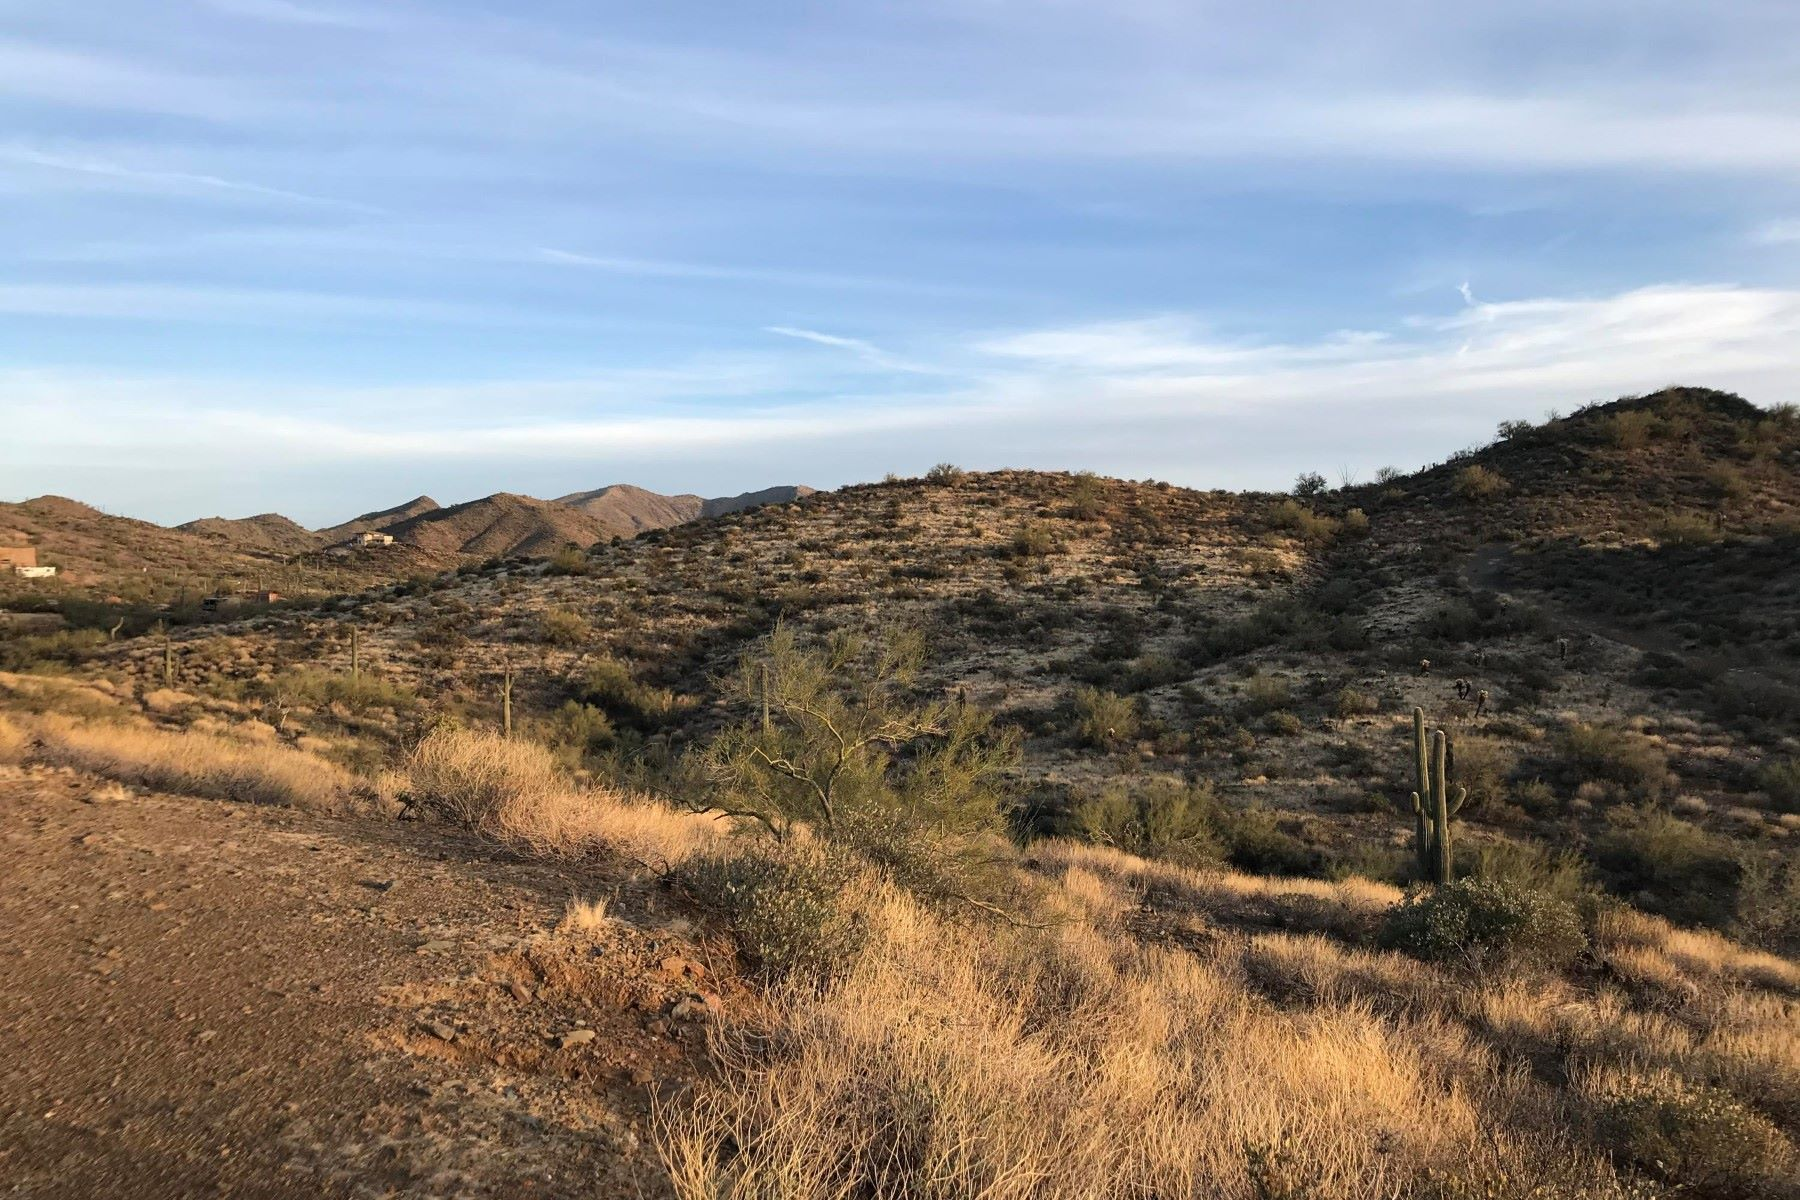 Single Family Home for Sale at 1.25 Acre Lot in the Rolling Hills of New River 47XX2 N 37th Ave lot 31 New River, Arizona 85087 United States